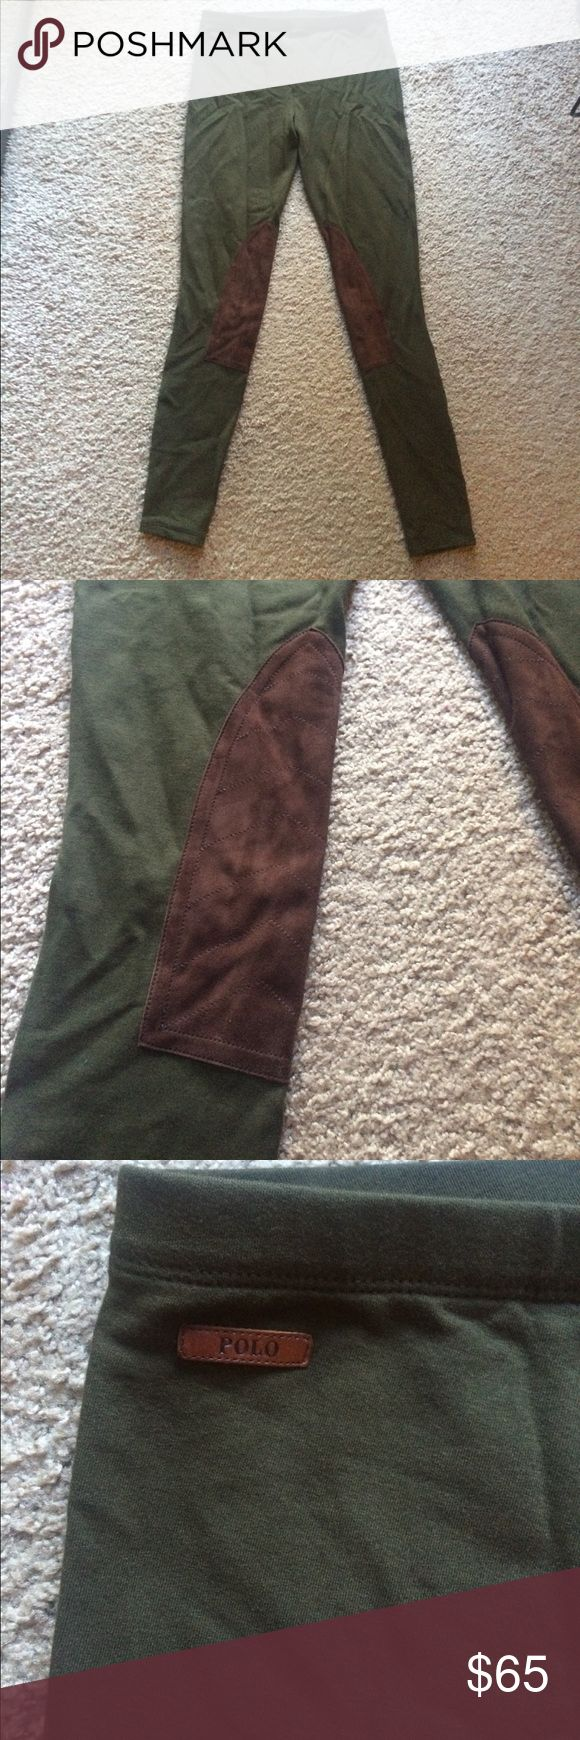 NWT RALPH LAURAN GREEN LEGGING+SUEDE PATCH-SZ S NWT RALPH LAURAN GREEN LEGGING+SUEDE PATCH-SZ S Polo by Ralph Lauren Pants Leggings